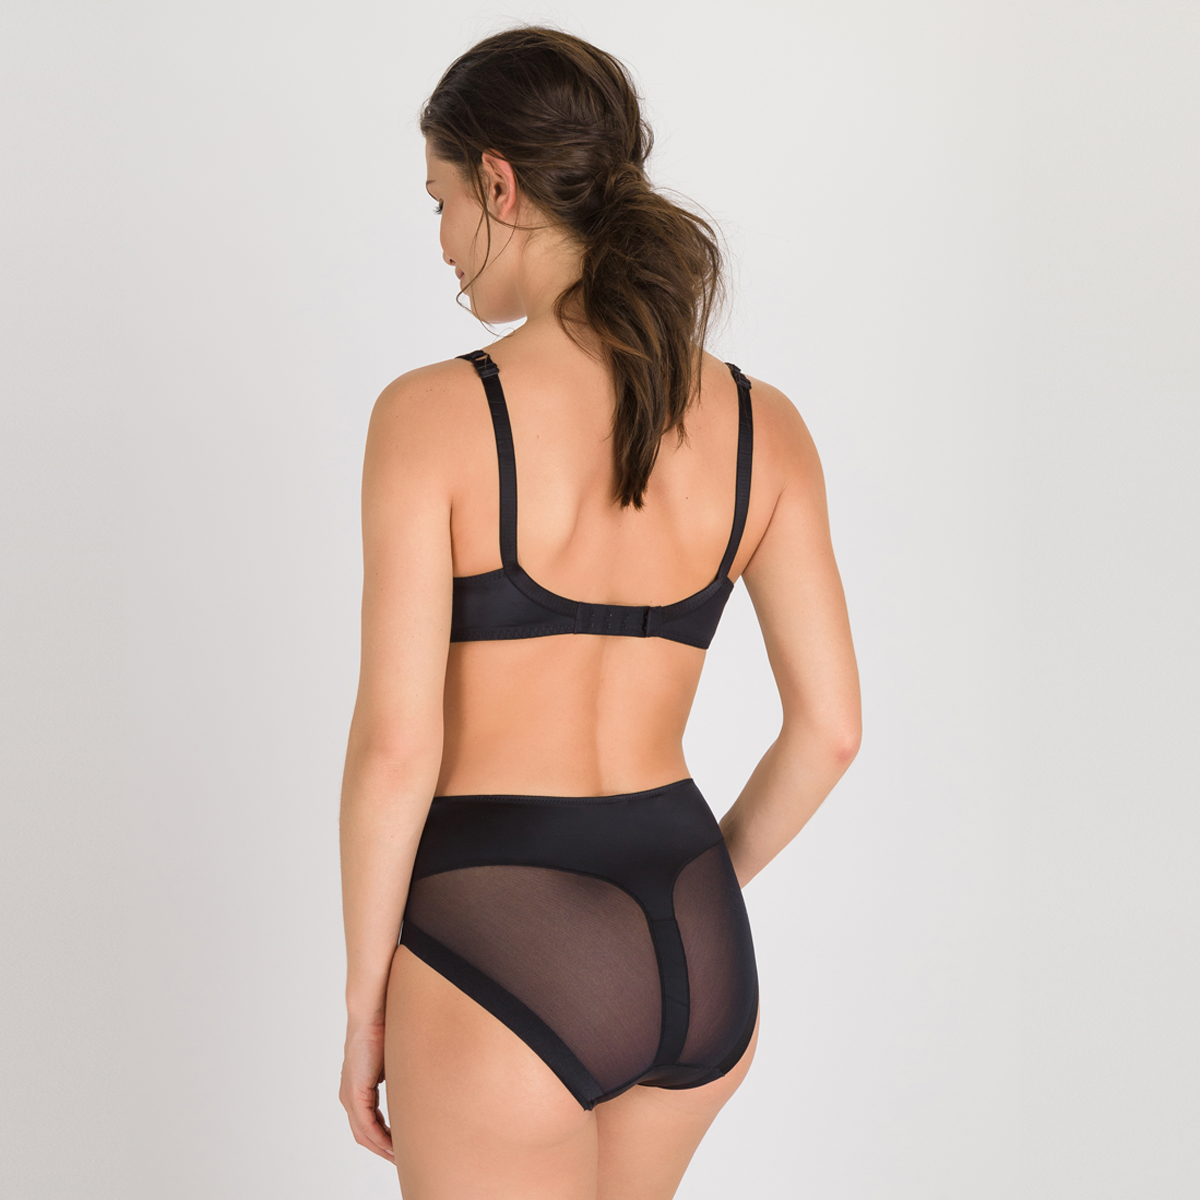 Full Cup Bra in Black - Perfect Silhouette, , PLAYTEX